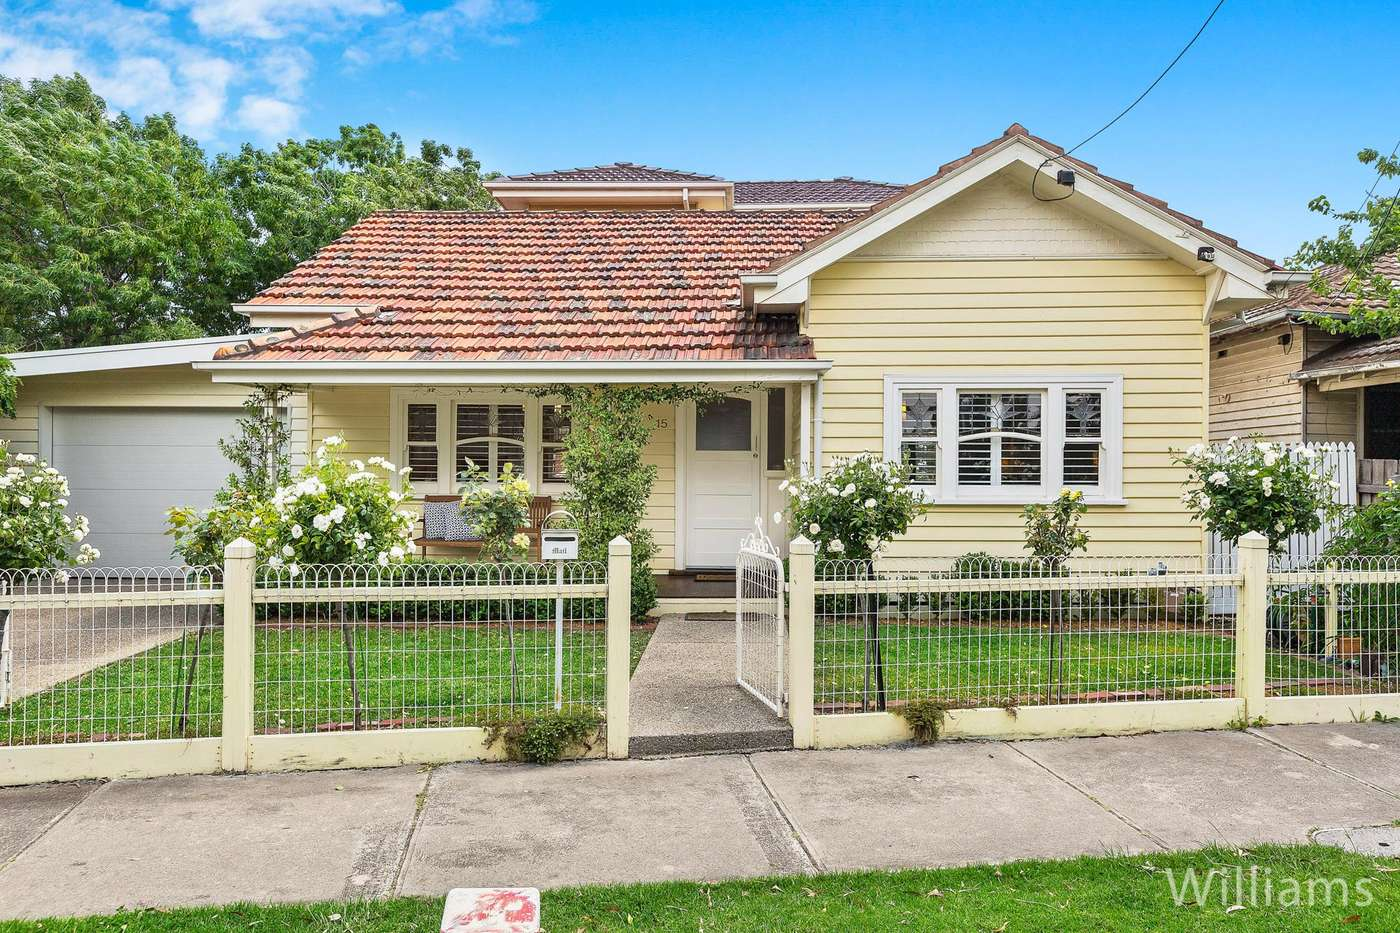 Main view of Homely house listing, 15 Latrobe Street, Newport, VIC 3015